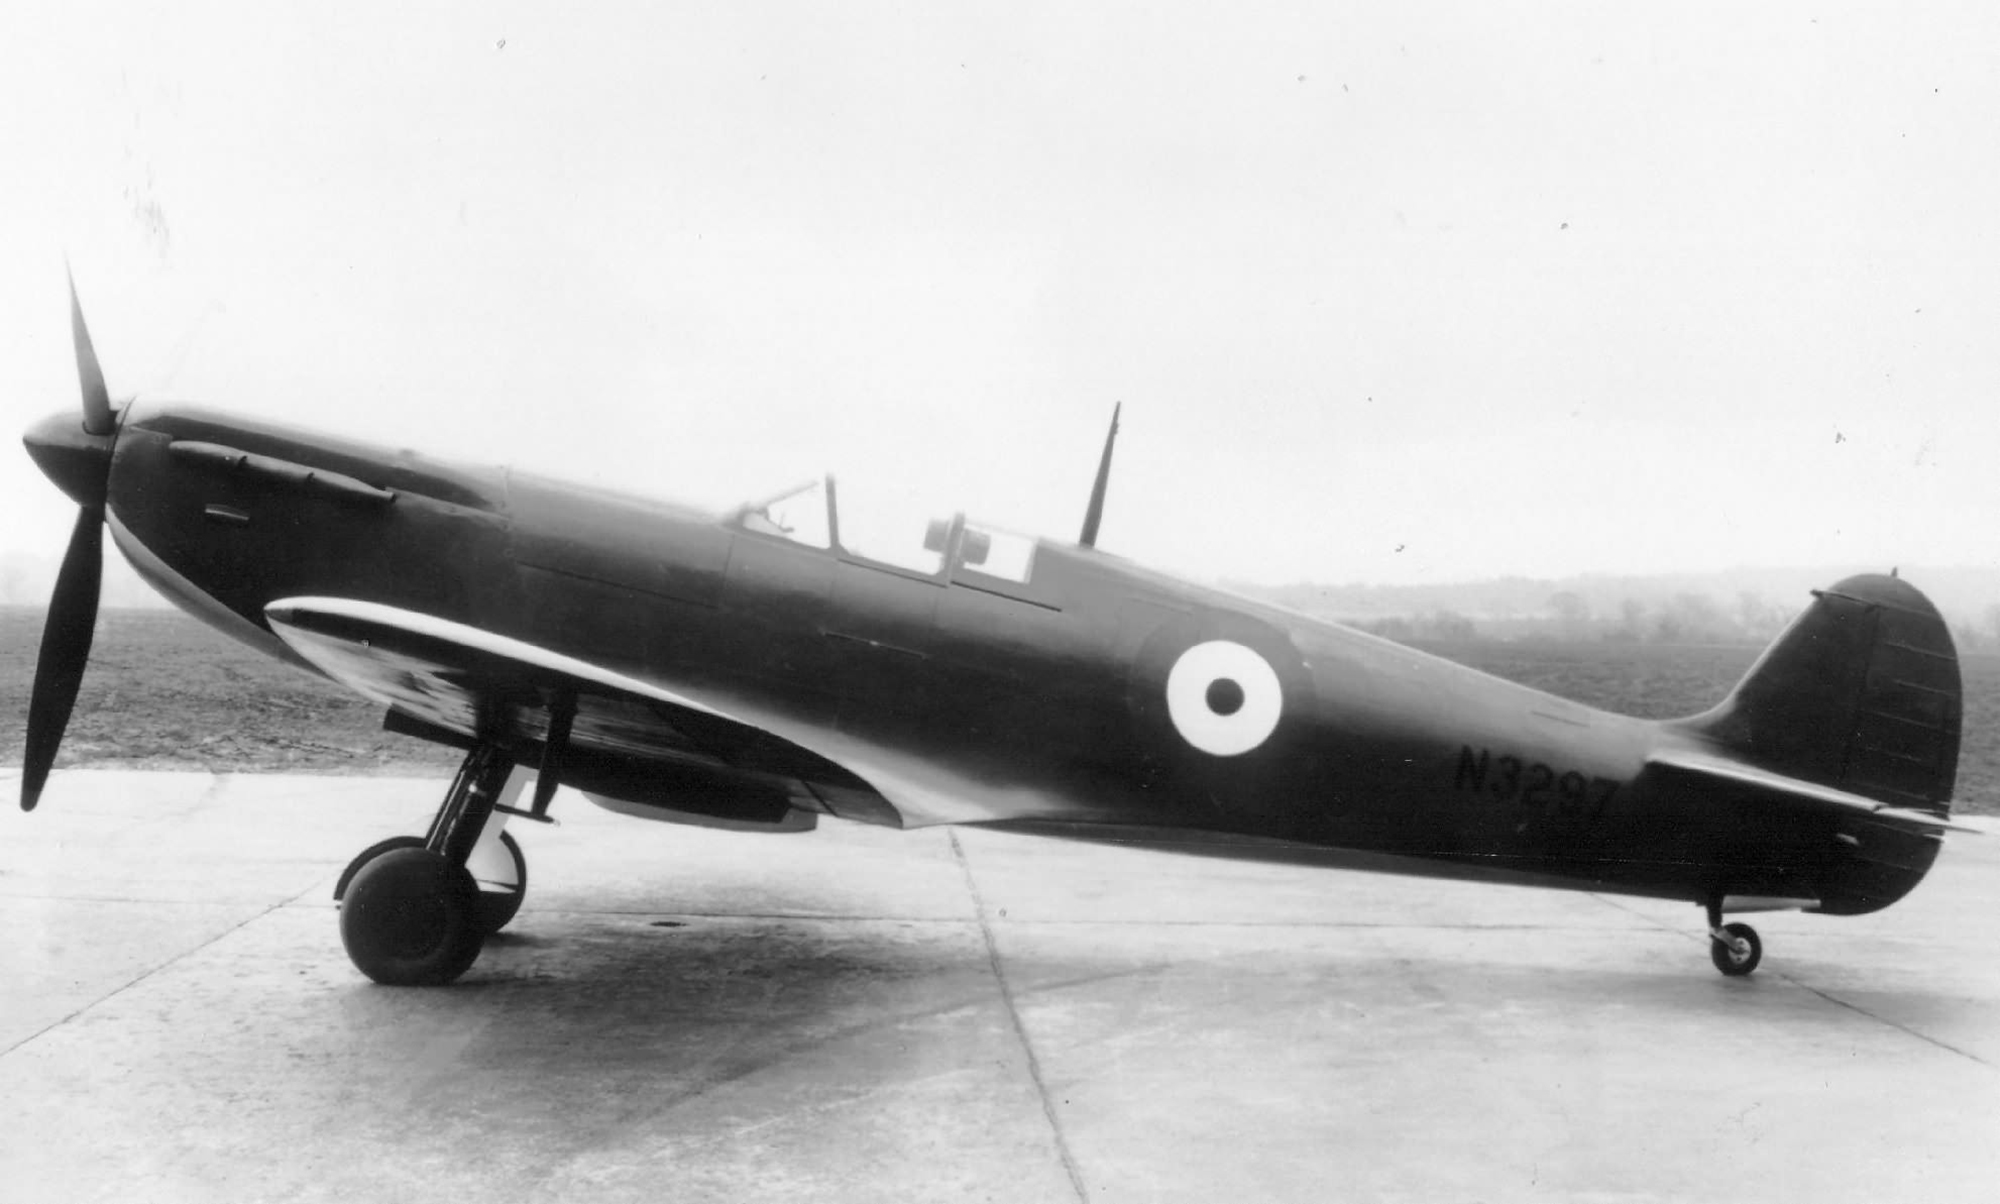 Spitfire 3 Prototype N3297 later became prototype 9 England Oct 1941 web 04